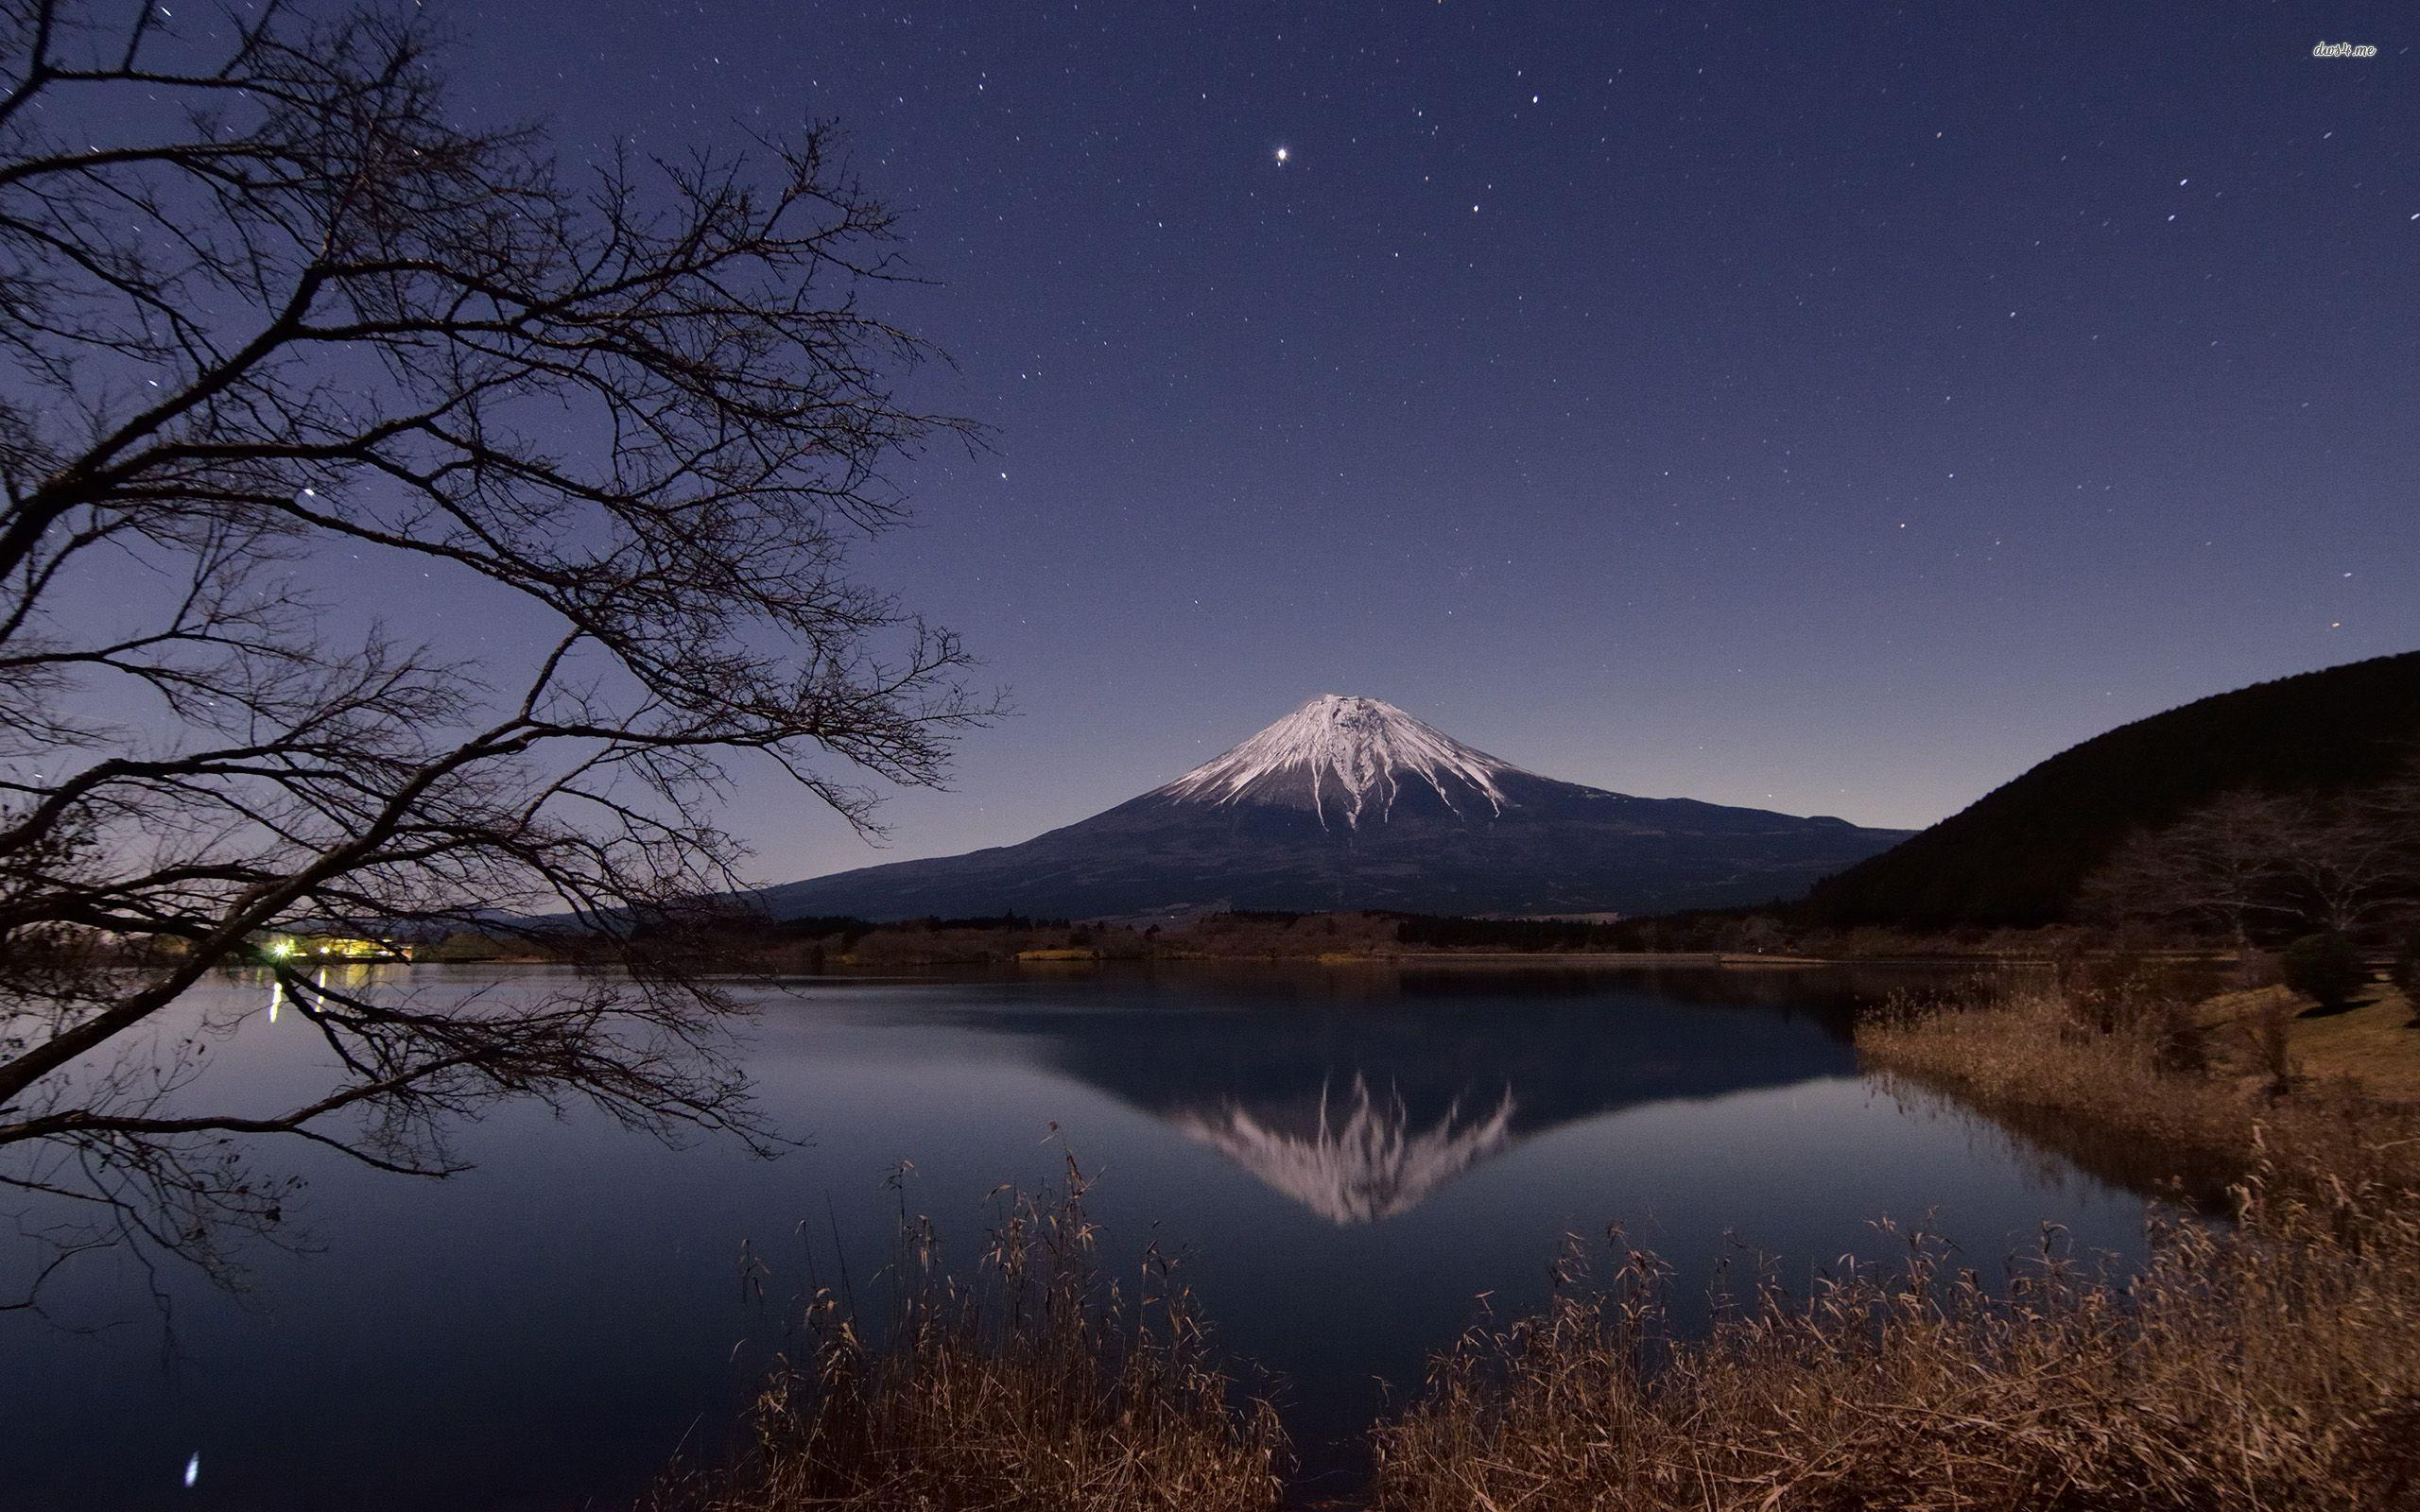 Mount Fuji Wallpapers 2560x1600